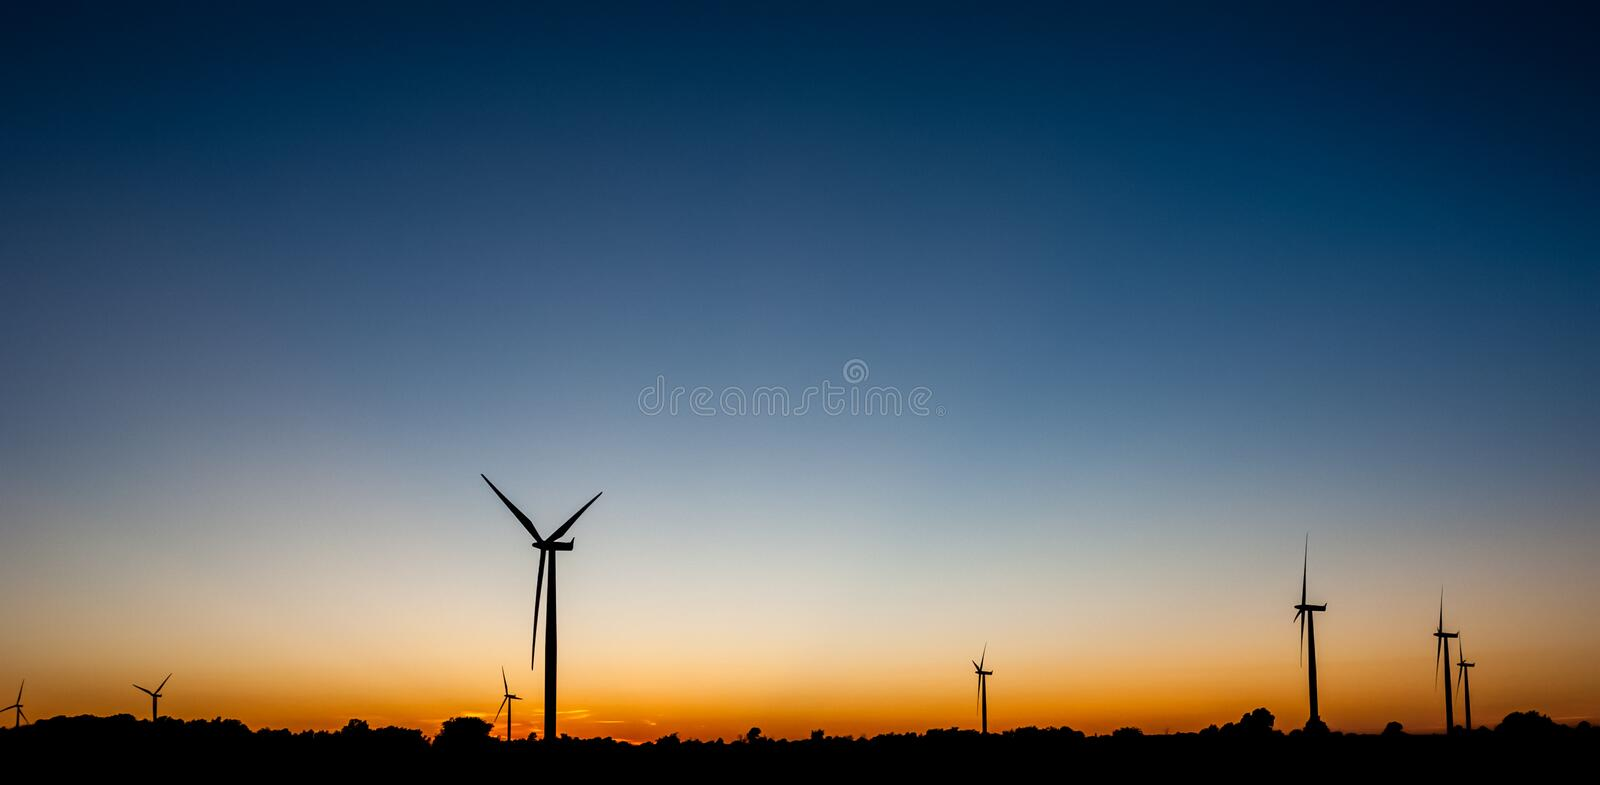 Multiple wind turbine outlines on orange and blue sky. Black silhouettes of several wind turbines against orange and blue sky at dusk stock images